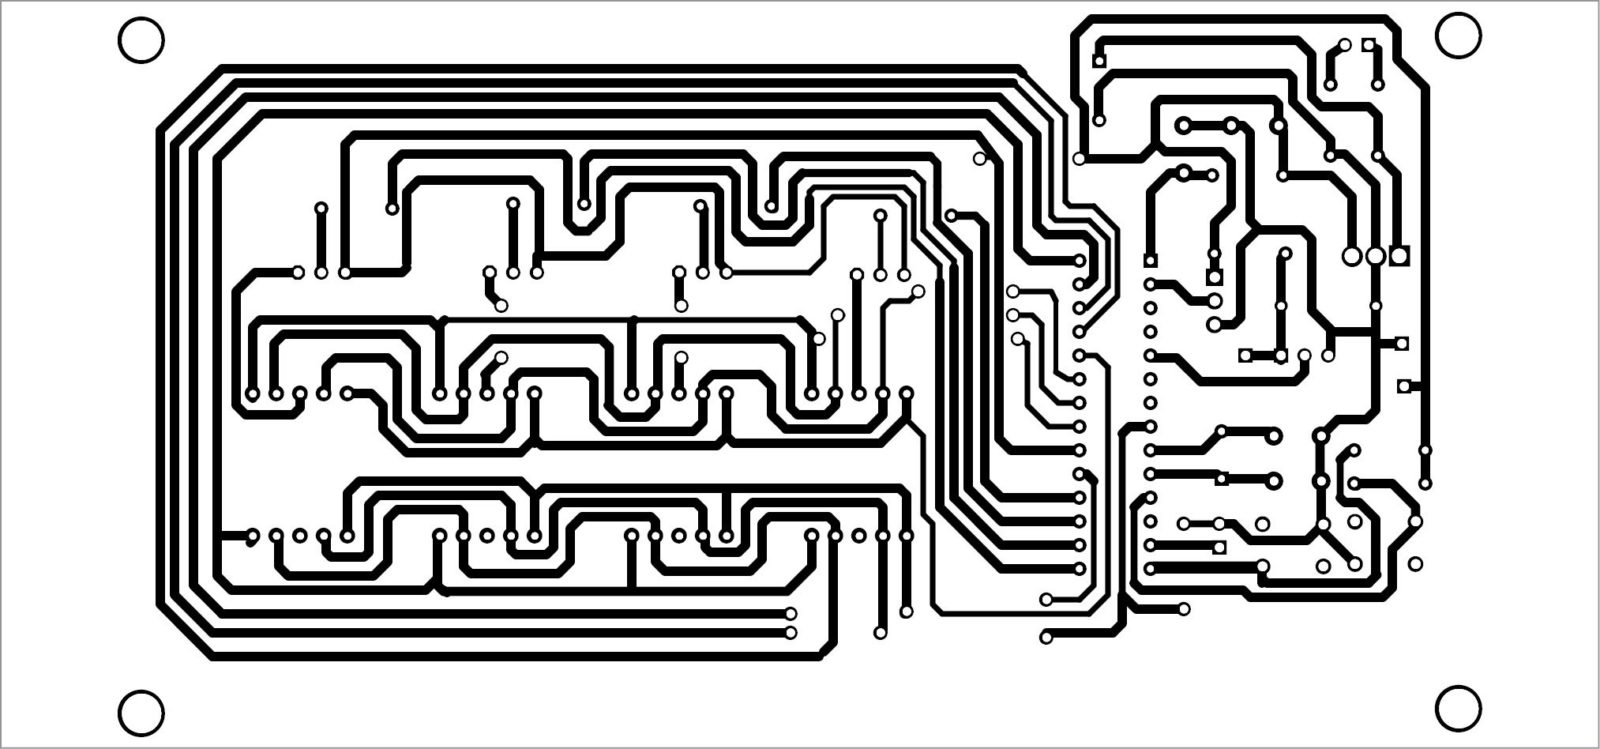 Fig. 2 Actual-size PCB layout for the alarm clock-cum-temperature indicator circuit